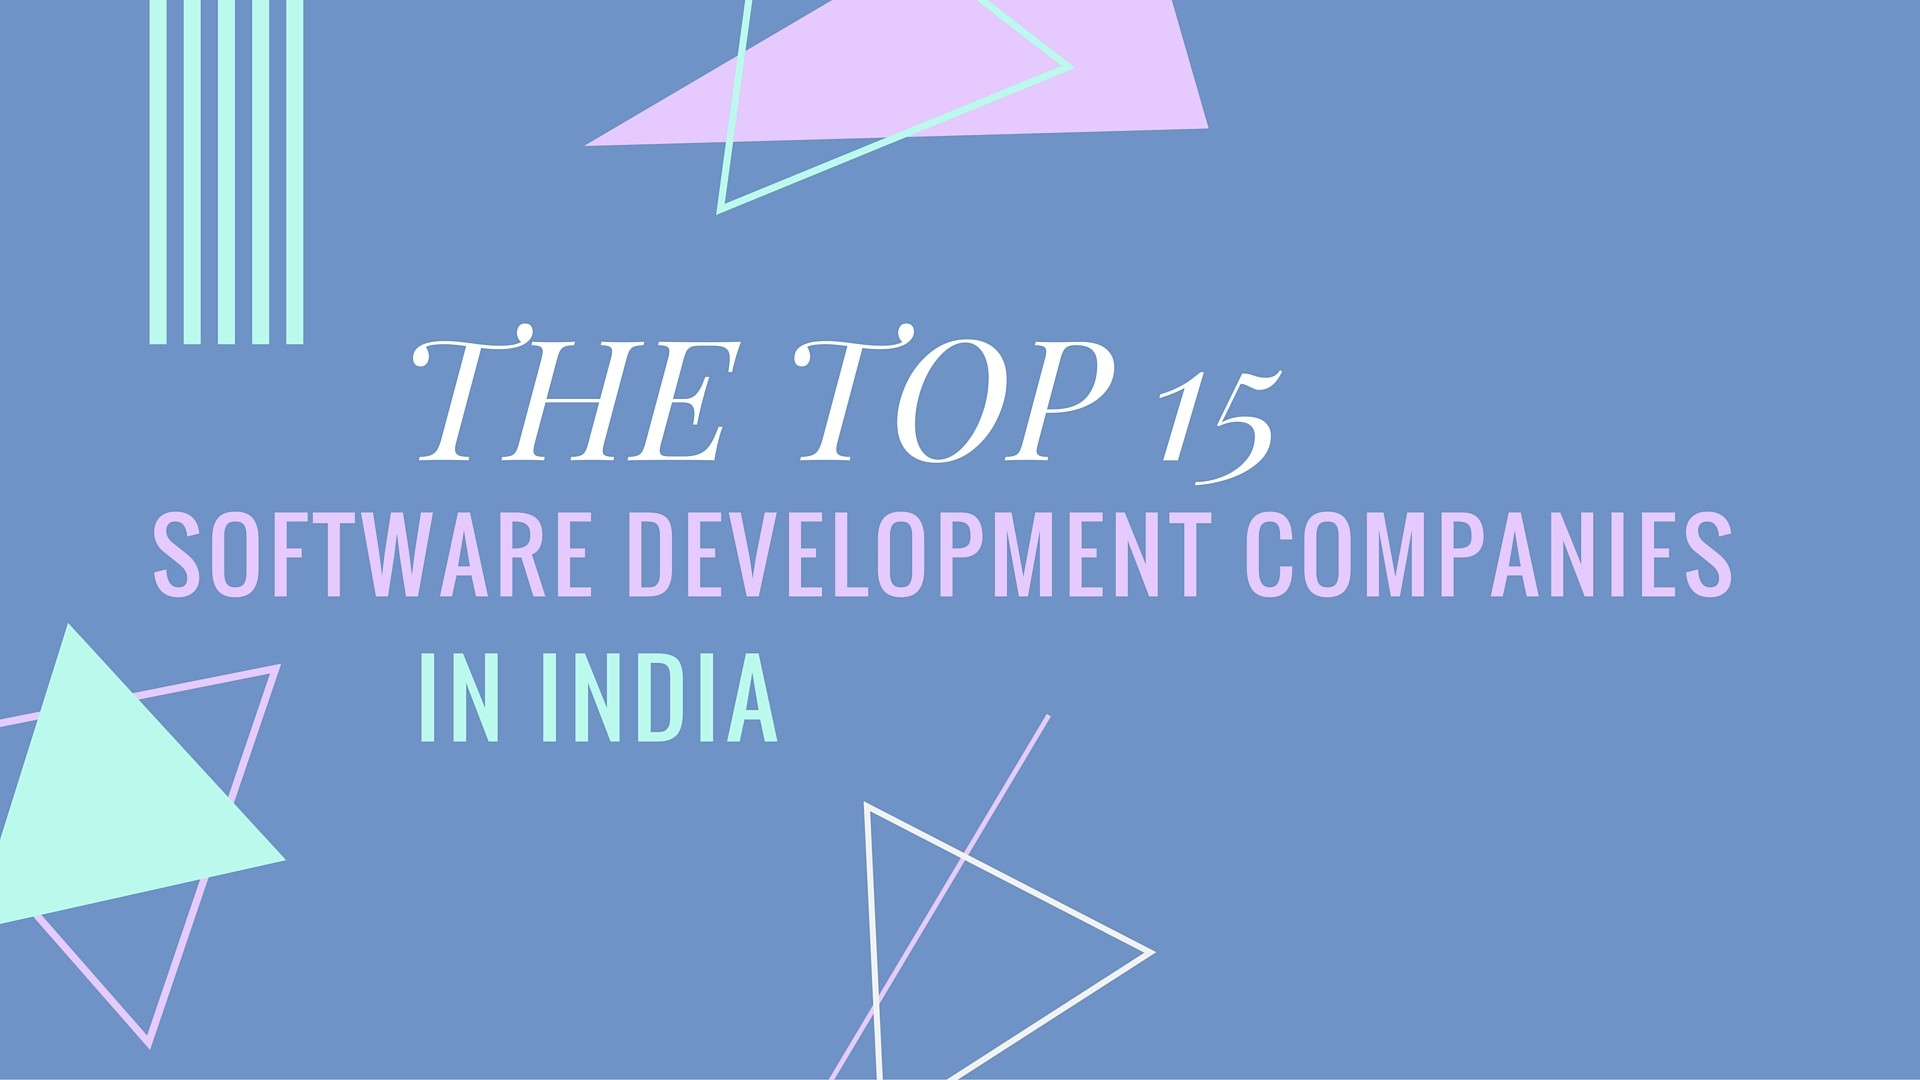 Software Developer Companies In Top 15 Software Development Companies In India Truelancer Blog